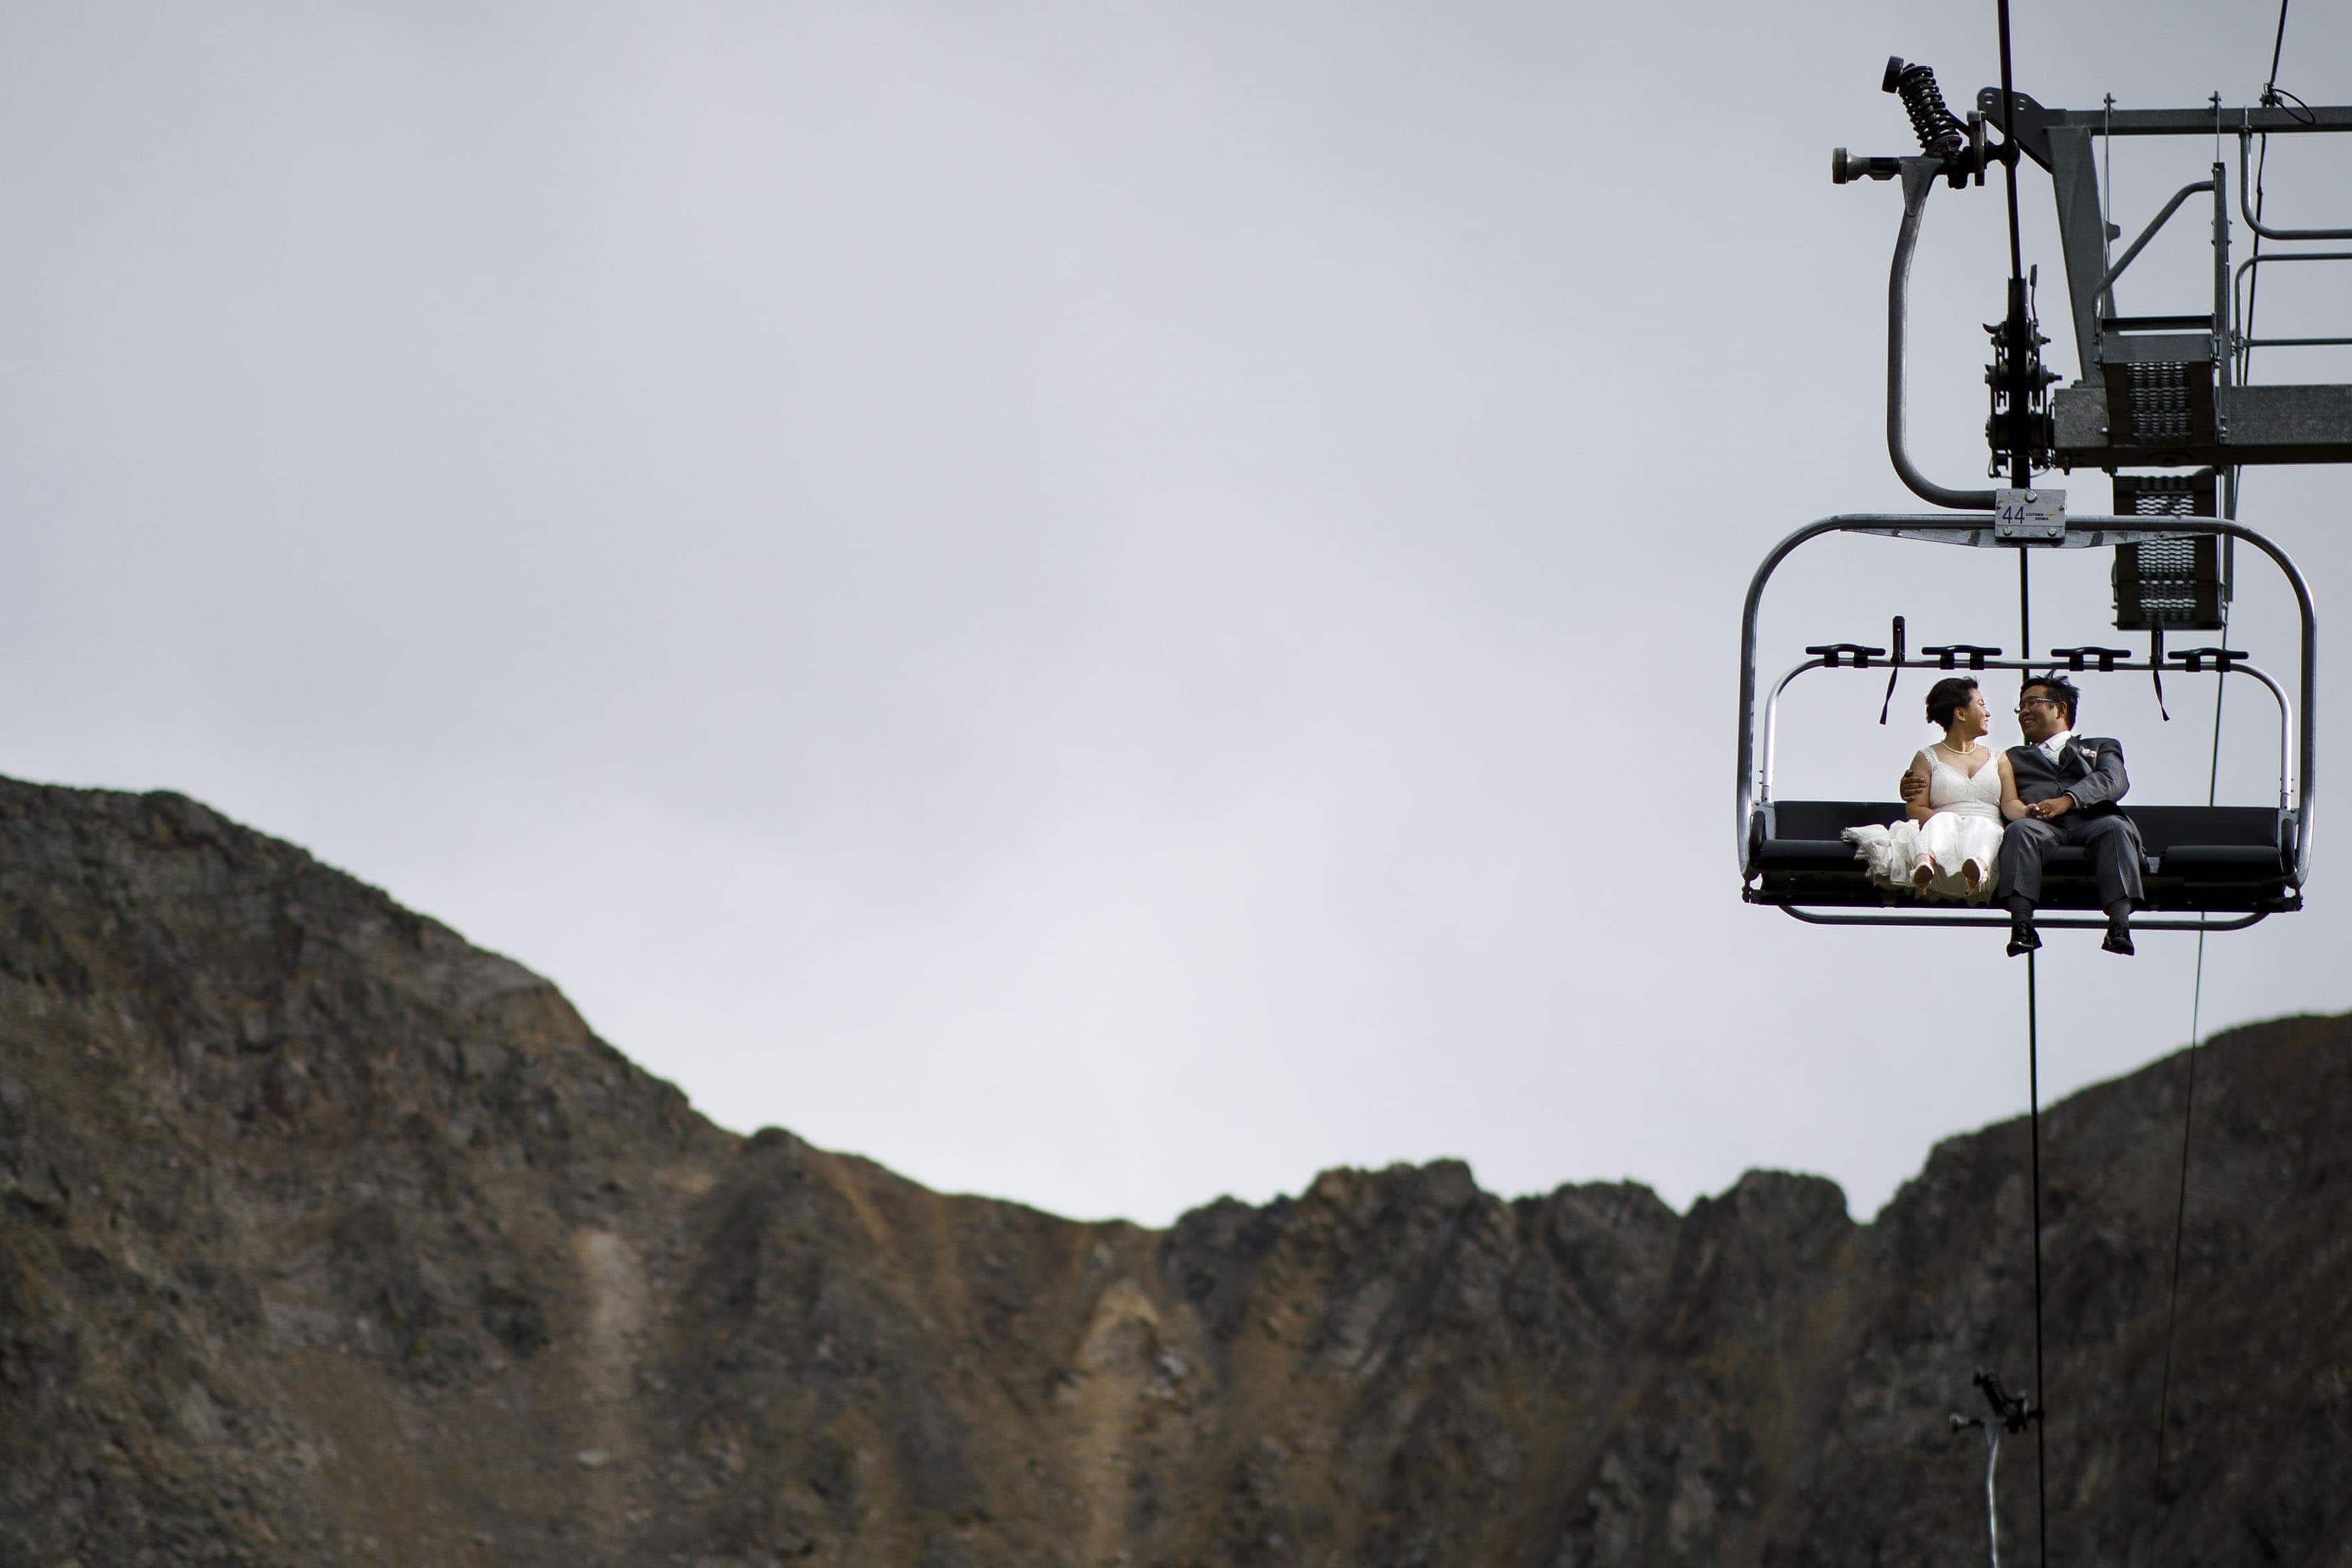 A couple ride the Black Mountain Express chairlift at A Basin on their wedding day